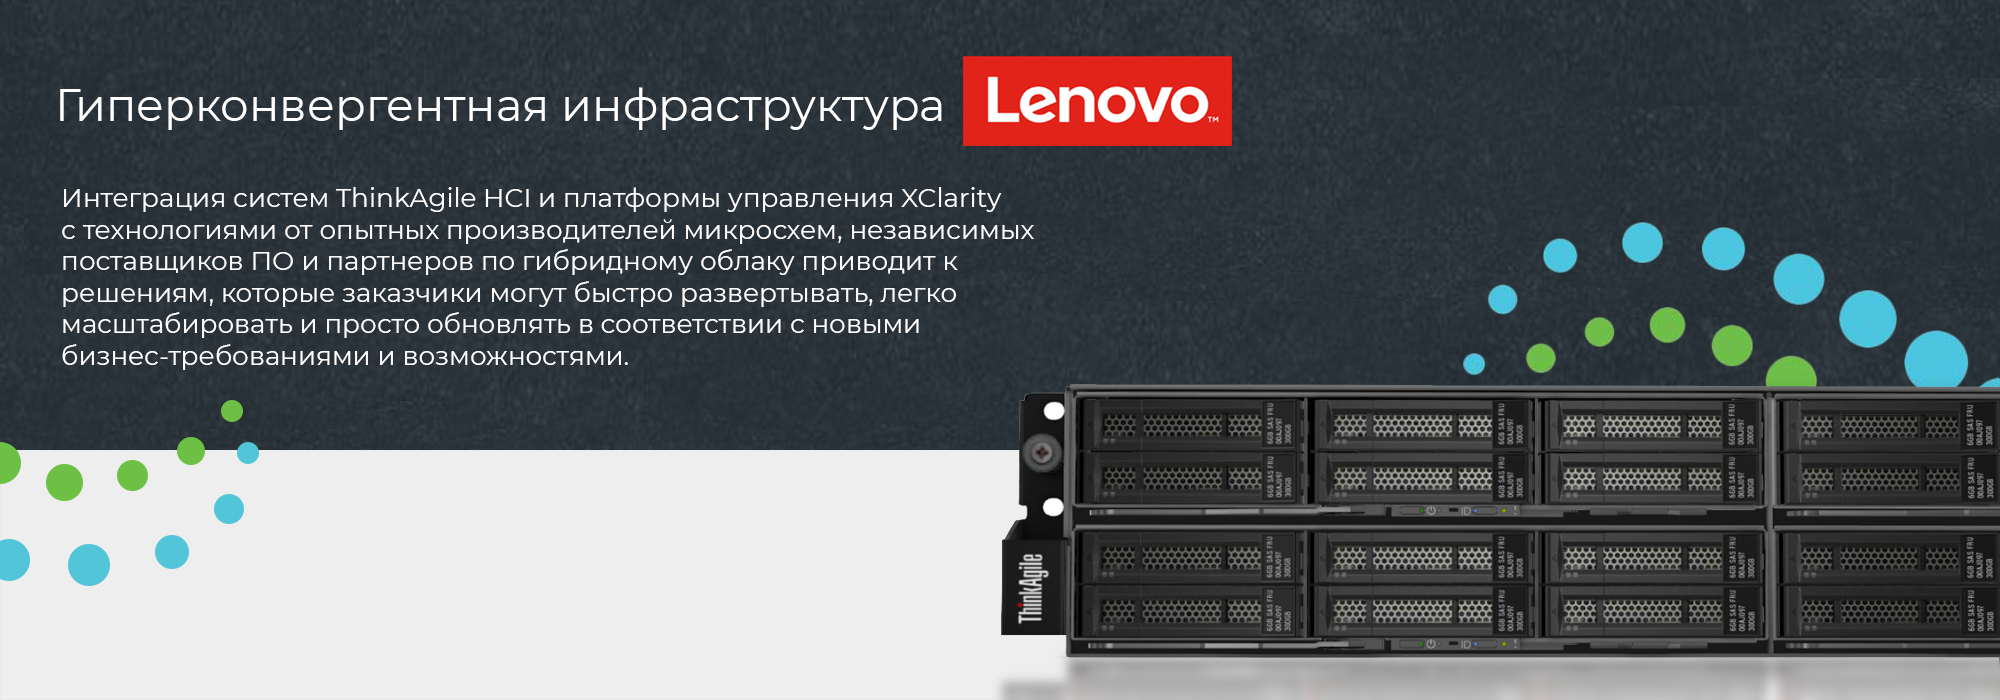 Гиперконвергентная-инфраструктура-Lenovo-Think-Agile